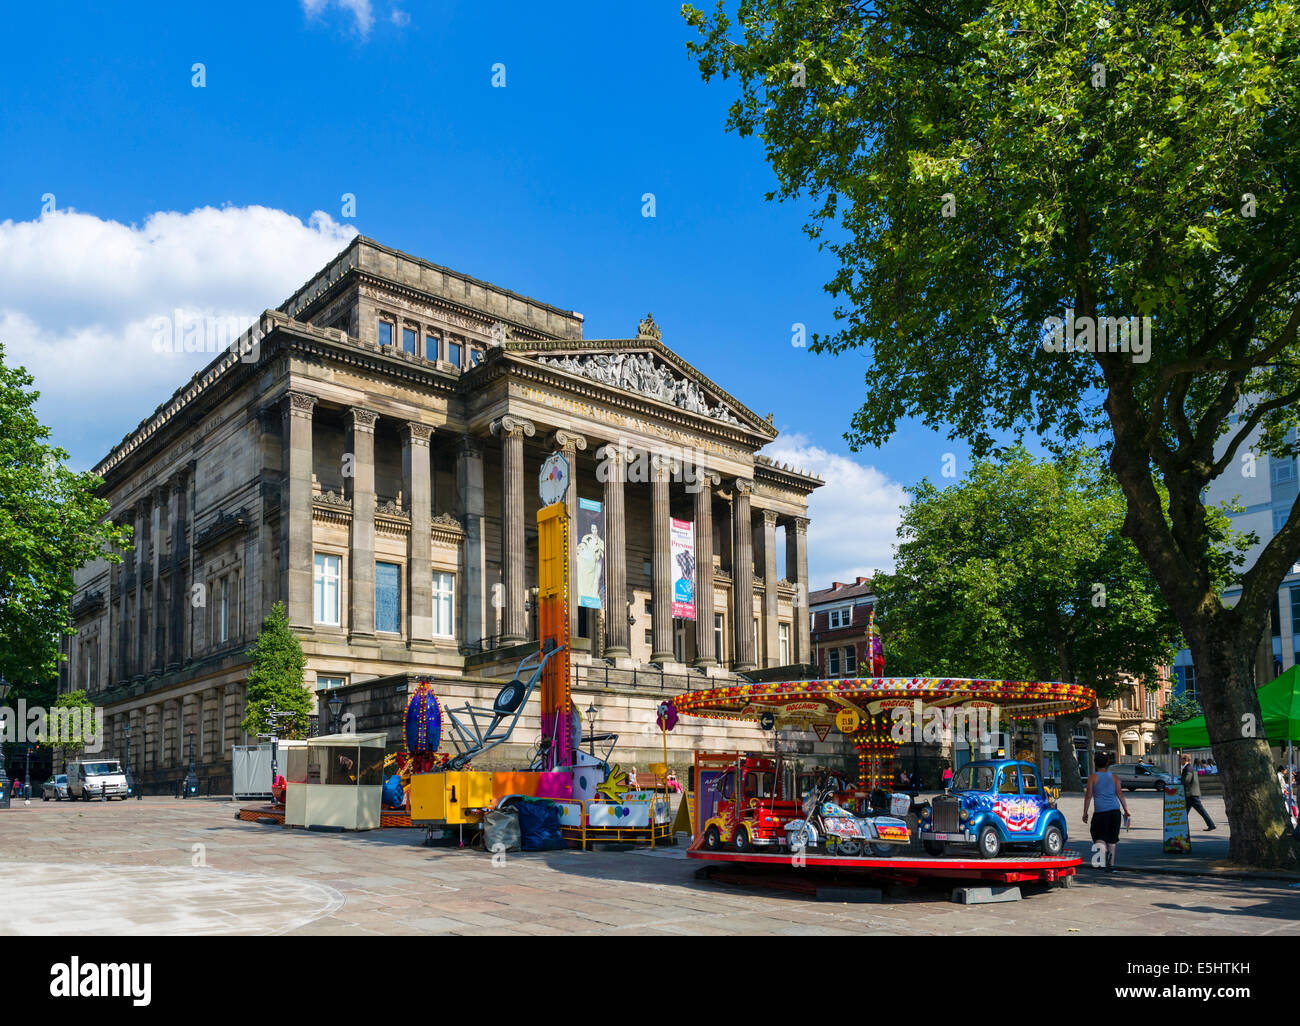 Fairground rides in front of the Harris Museum and Art Gallery, Market Square, Preston, Lancashire, UK - Stock Image